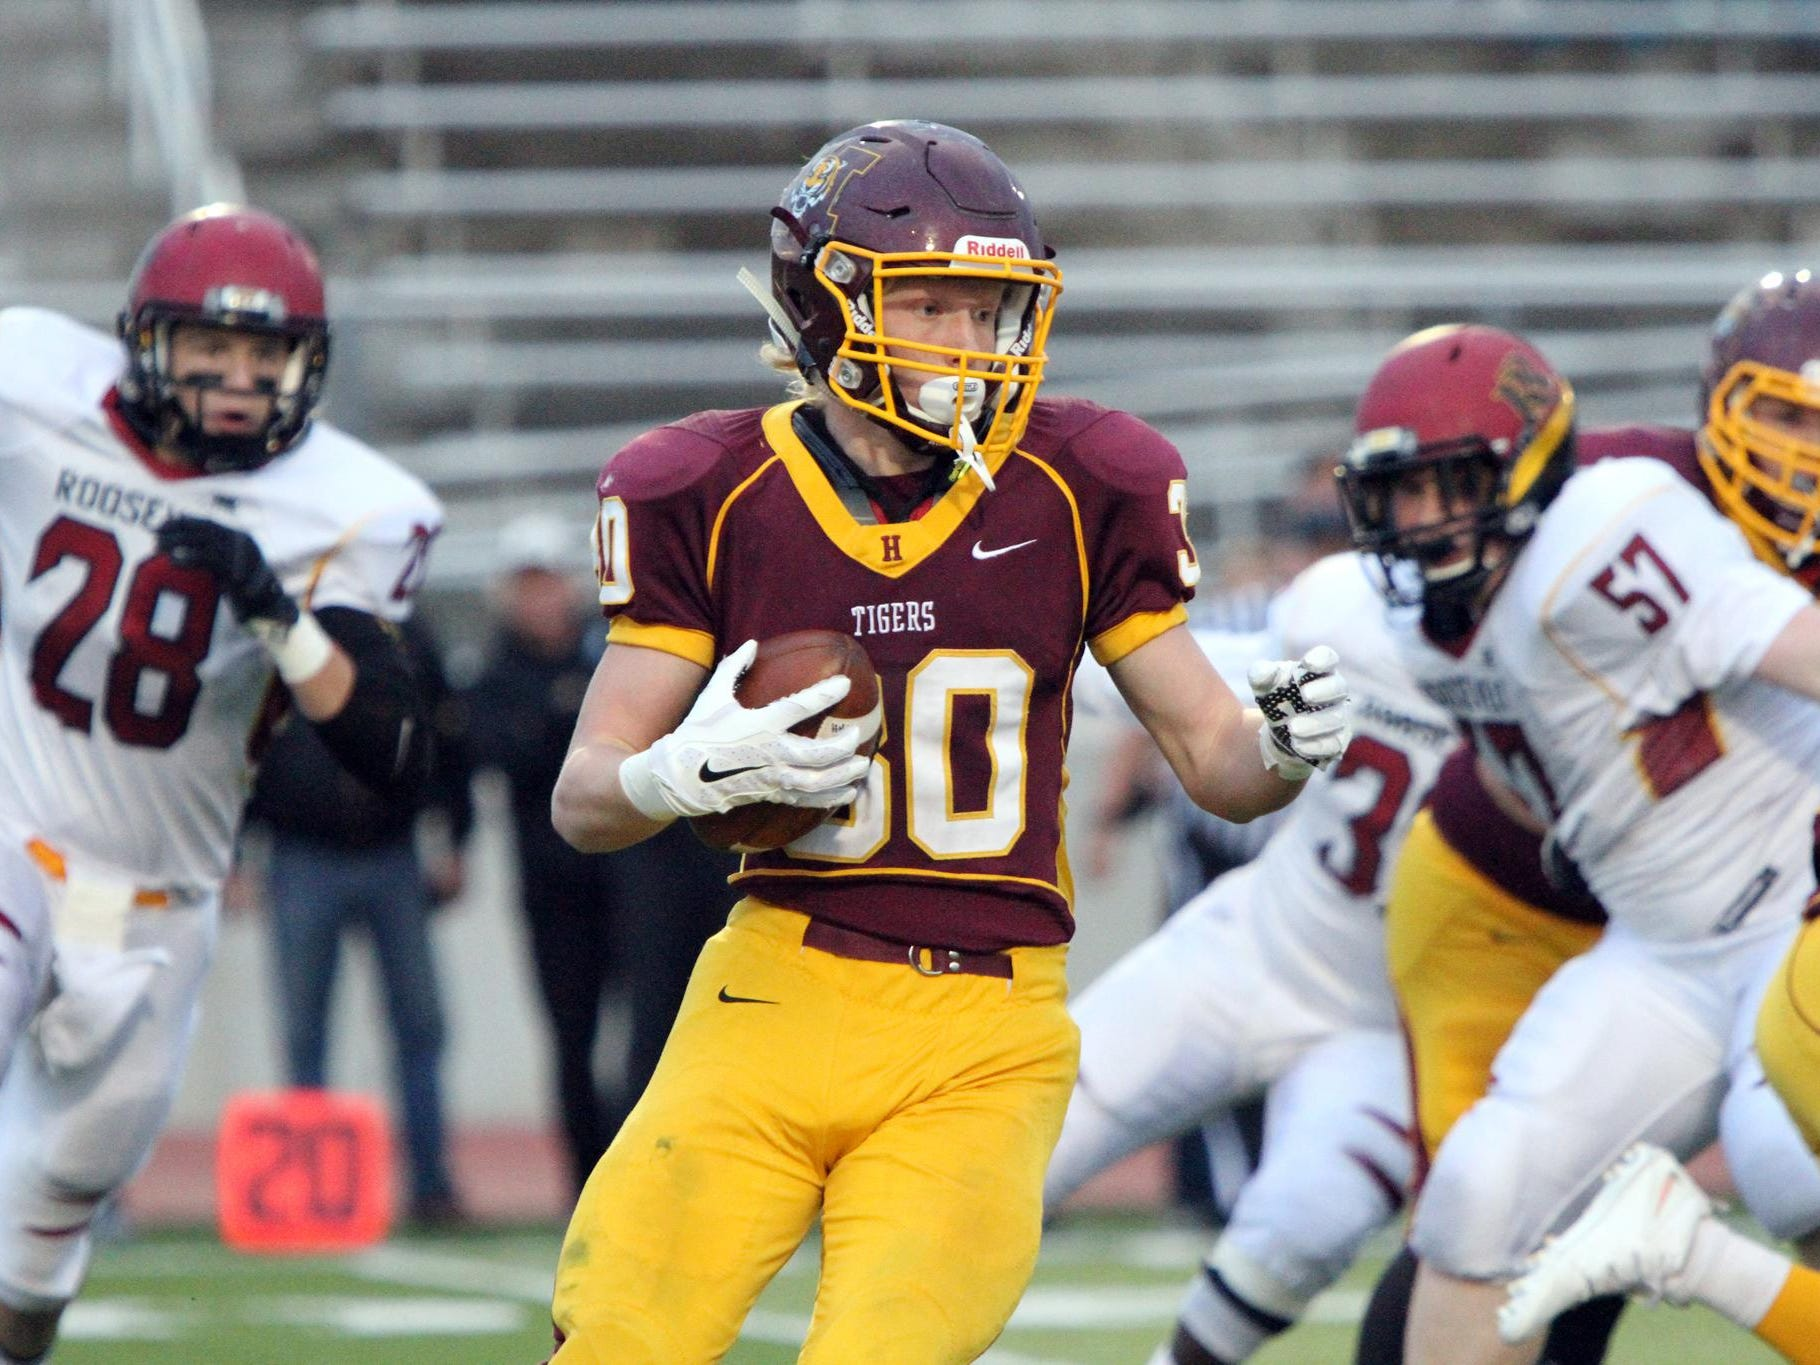 Jack Anderson (30) looks for some running room against Roosevelt.